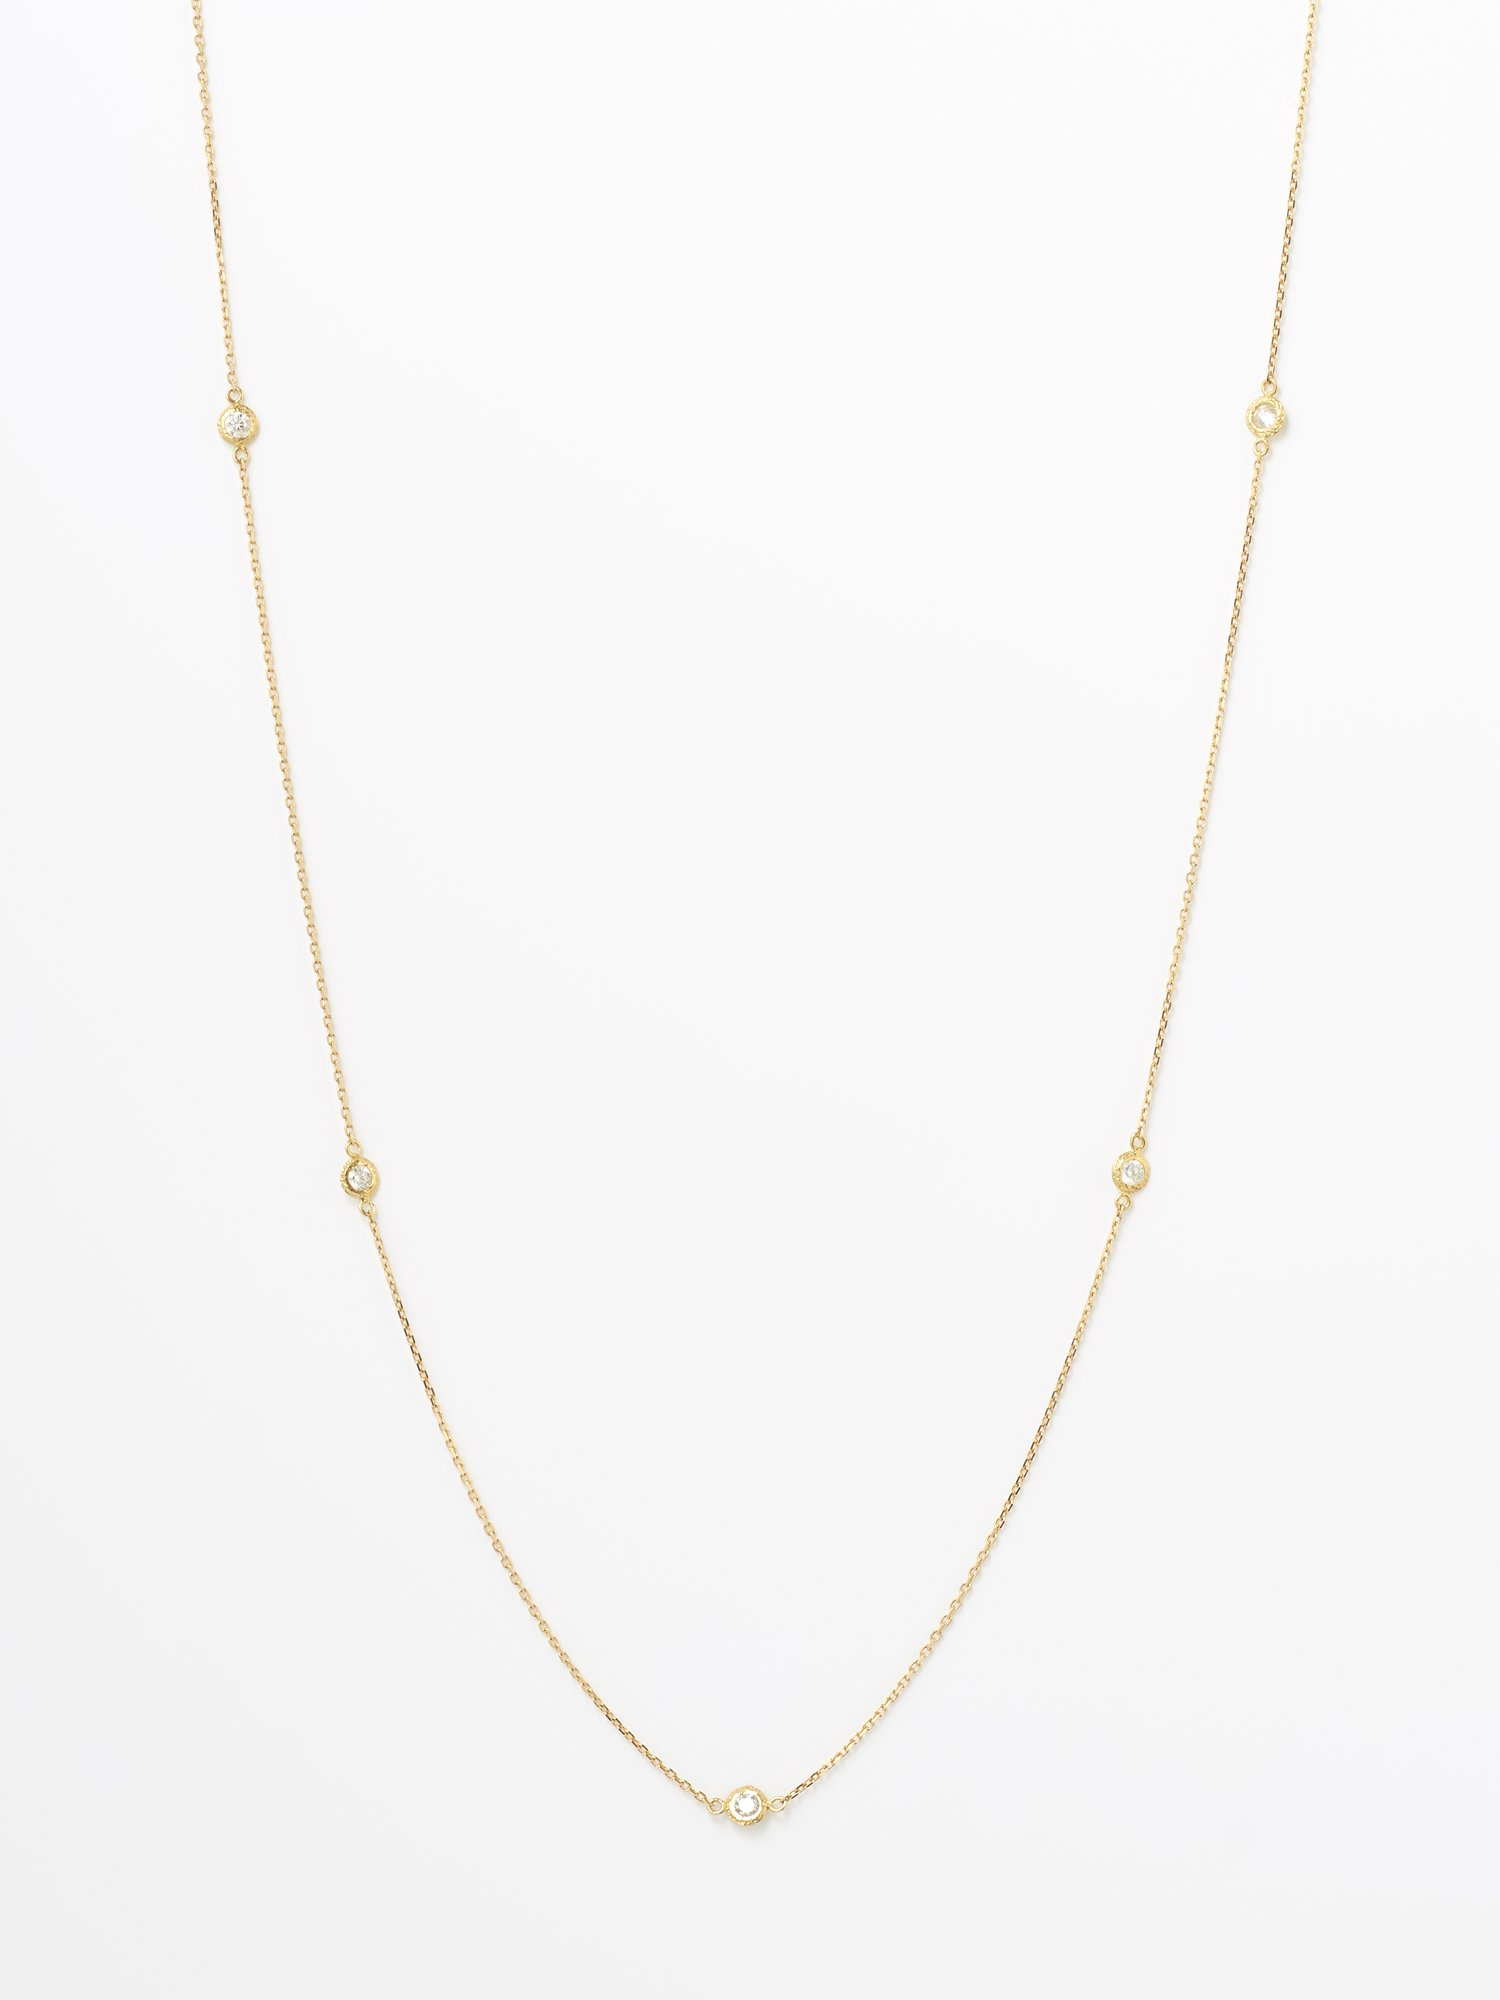 HISPANIA / Dew long necklace 在庫商品 / 950mm White sapphire